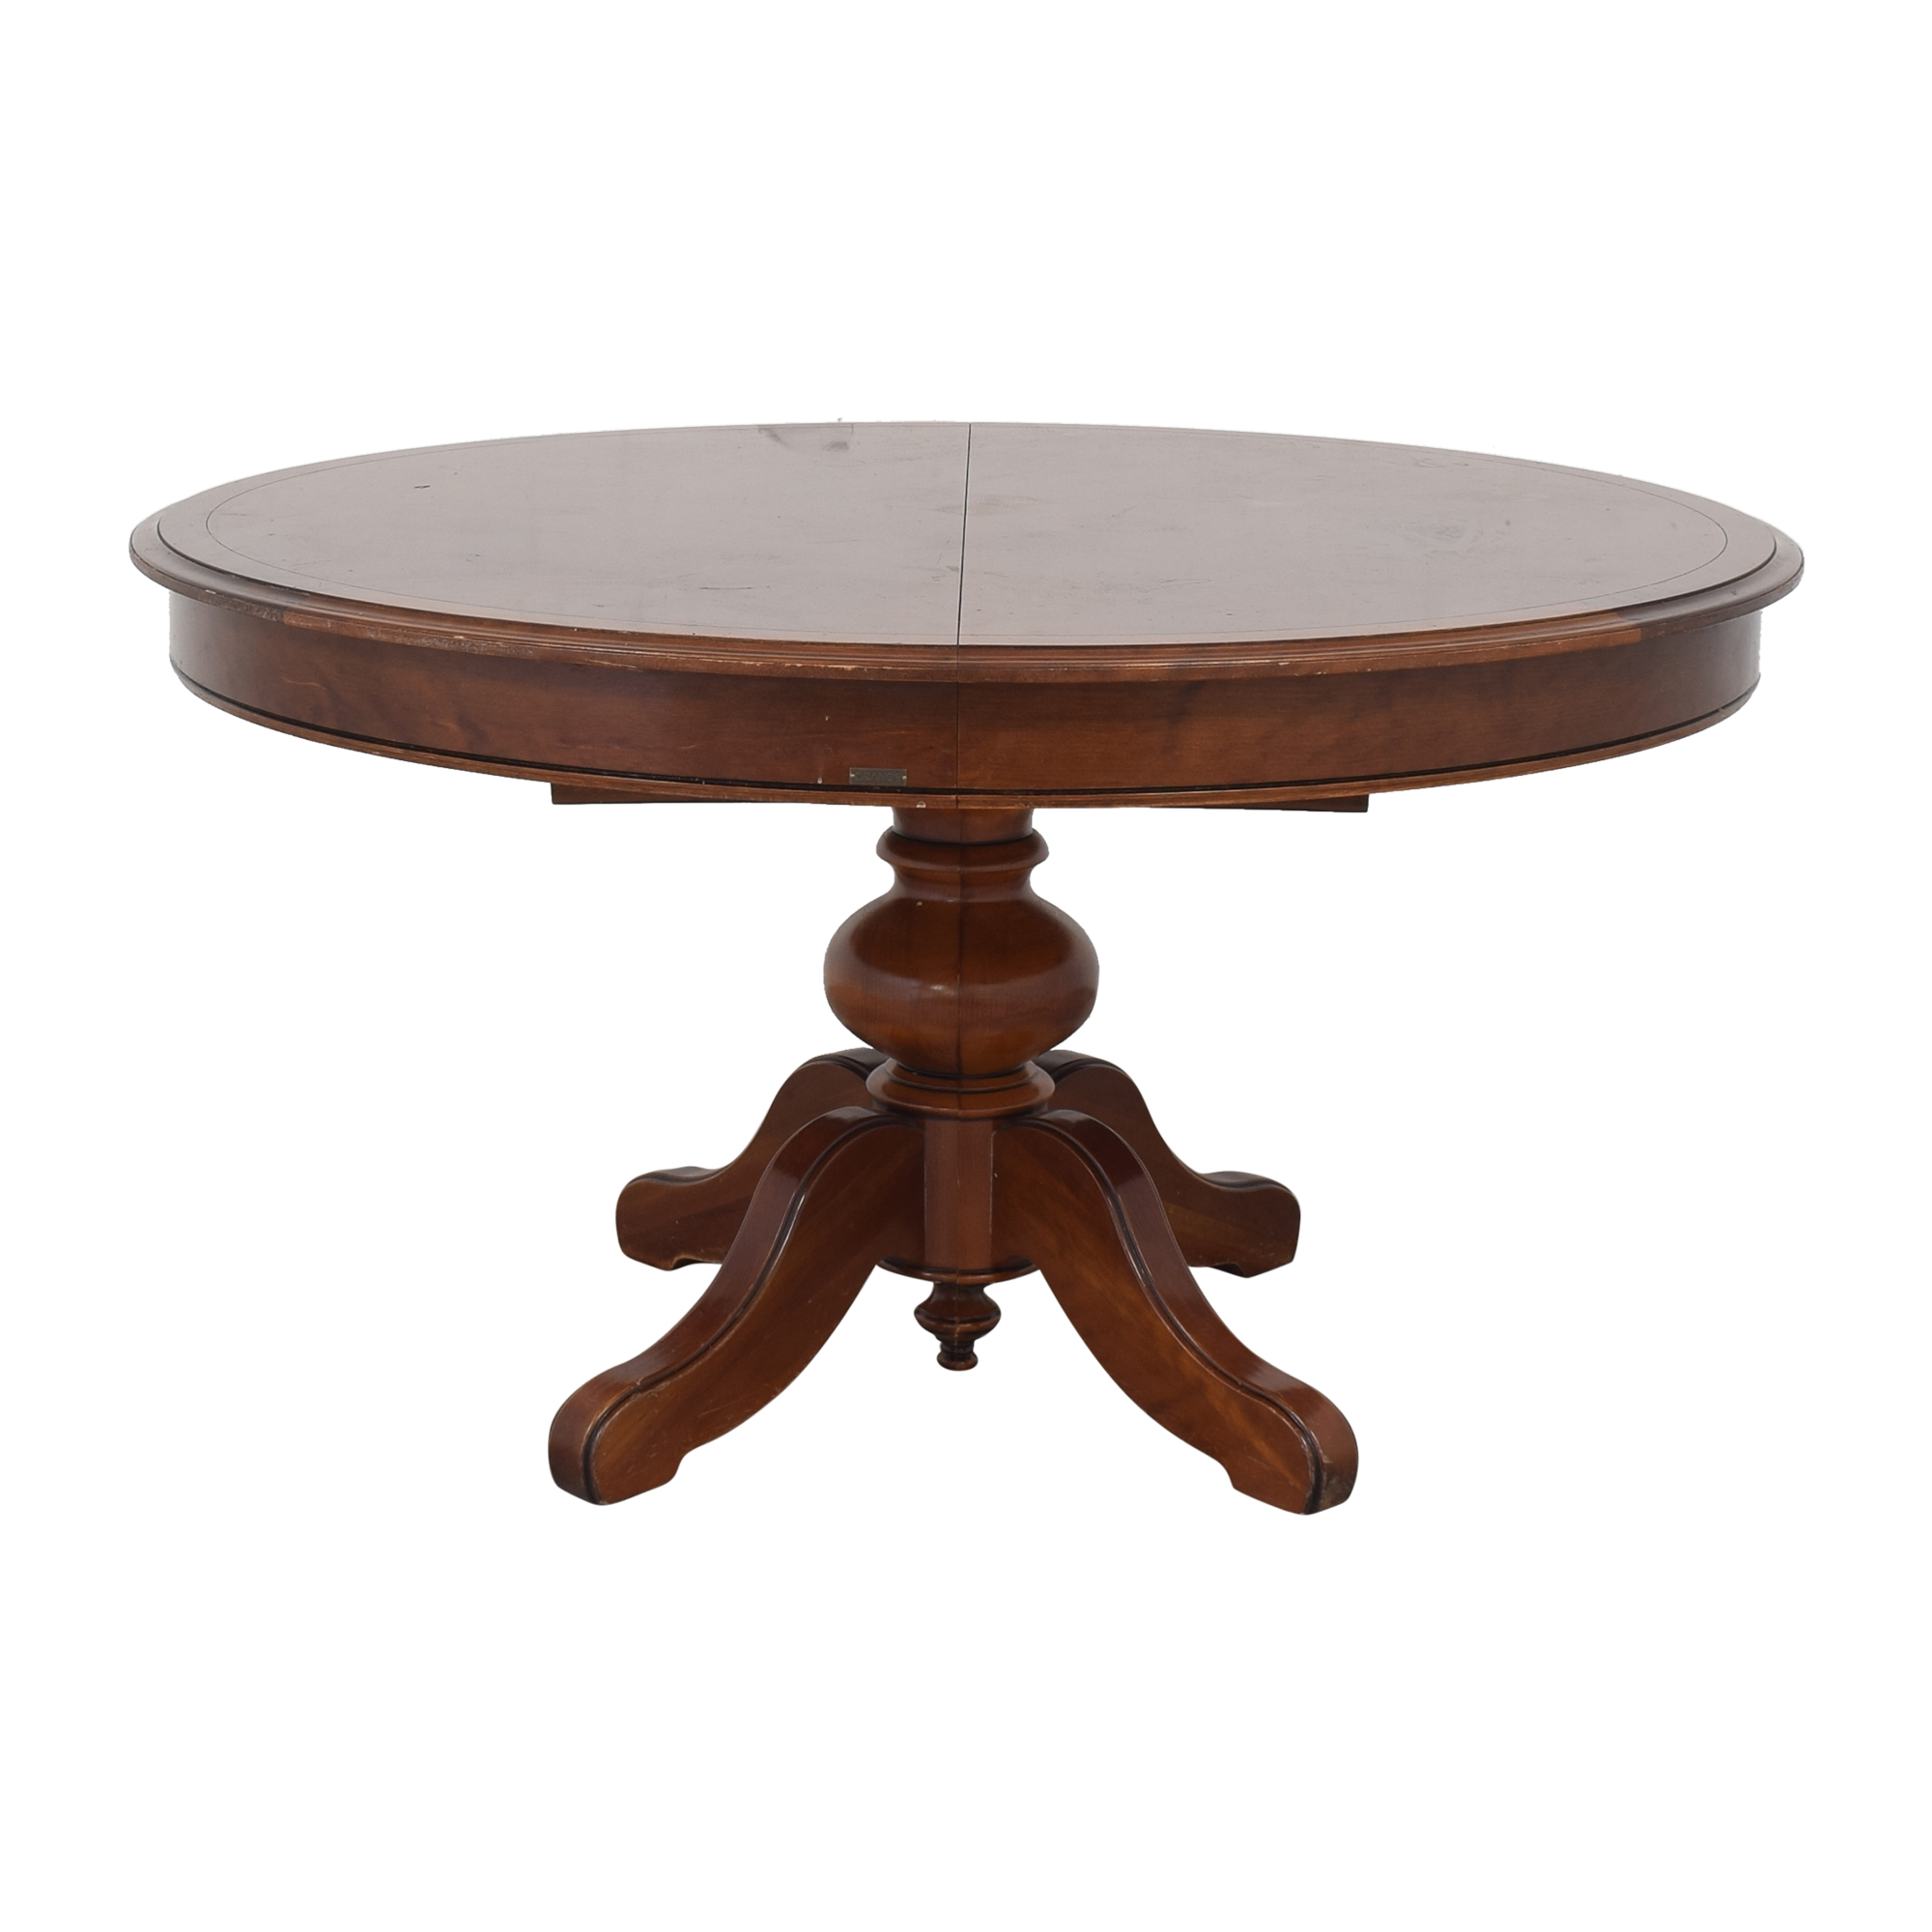 Grange Grange France Cherry Wood Extending Dining Table brown